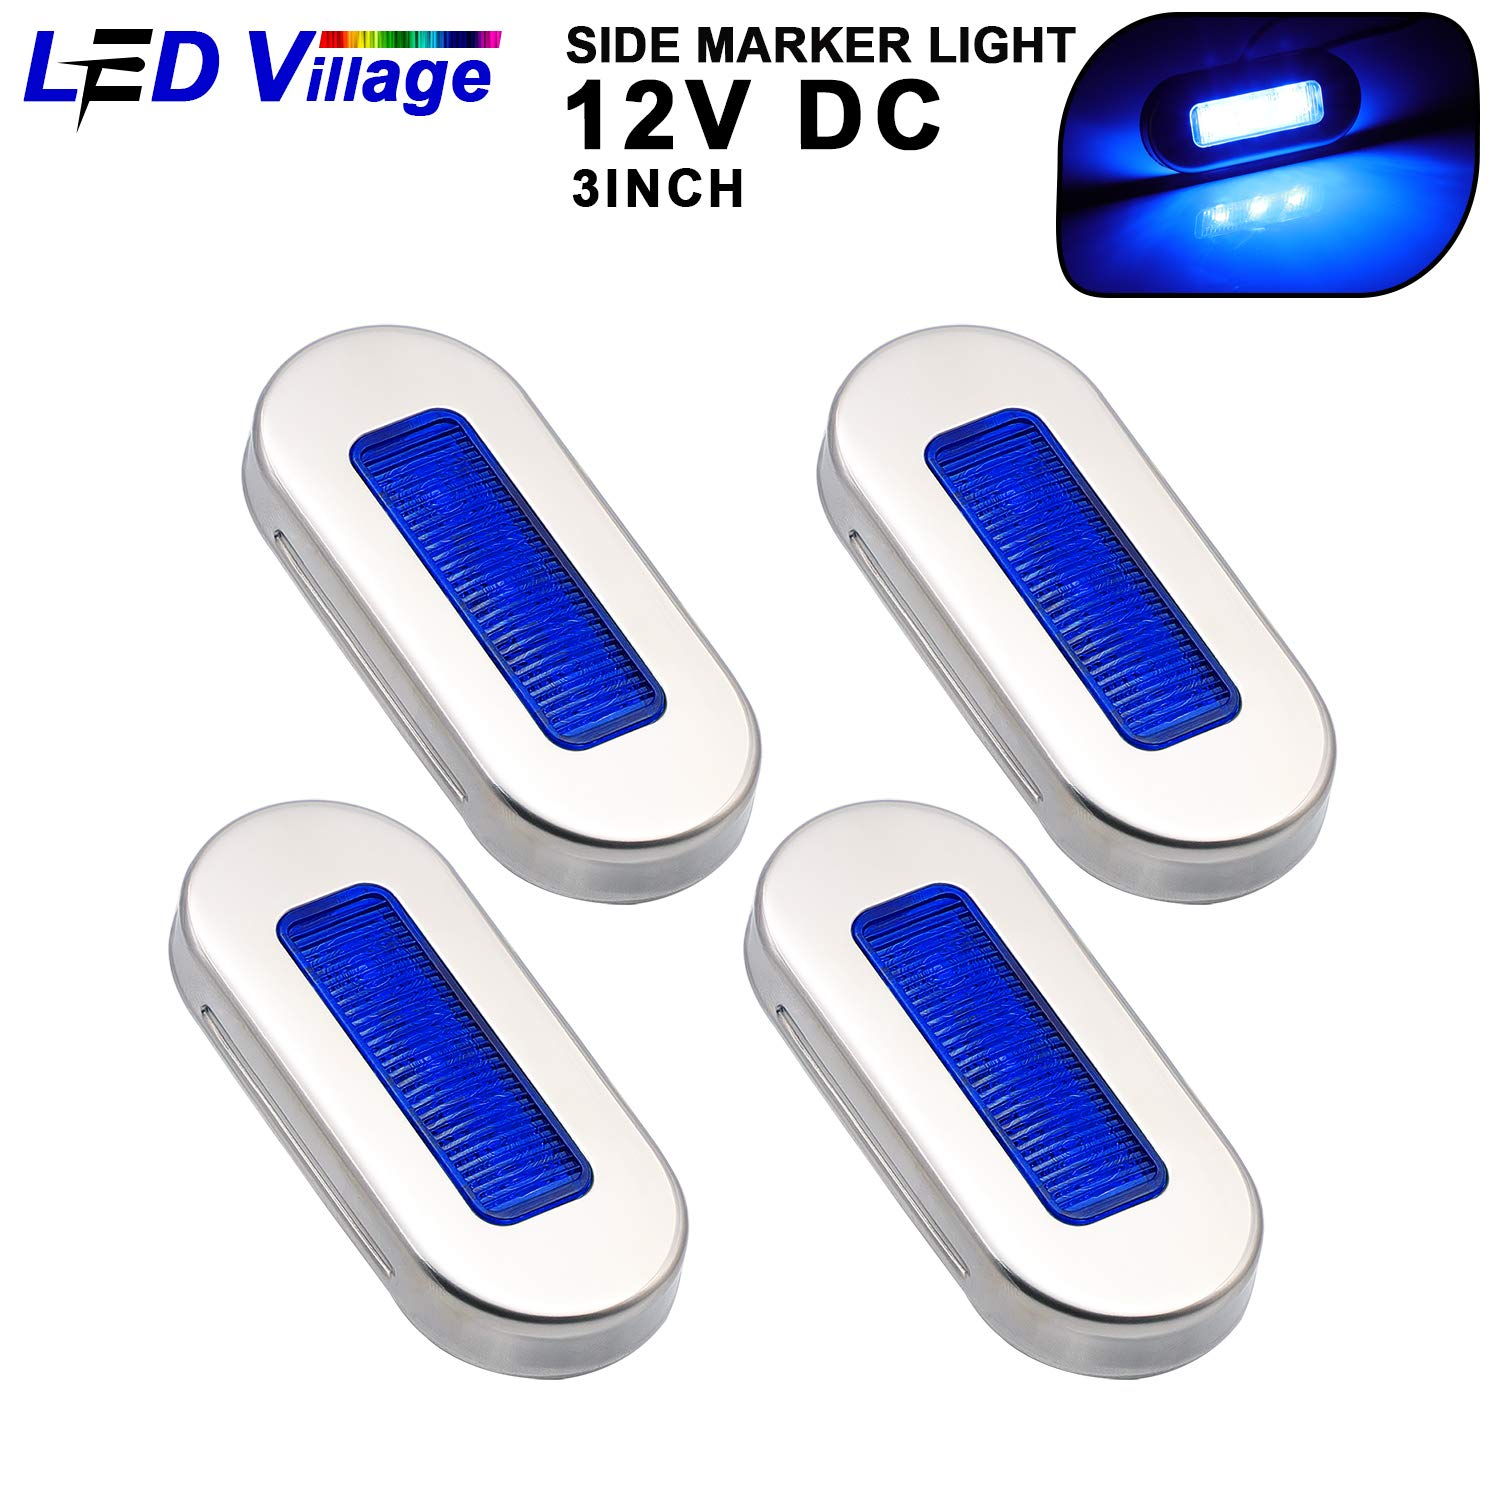 Ledvillage 3 Inch Oval 2 Amber 2 Red LED Courtesy Marine Lights Interior /& Exterior Lamp for Lorry Cabin Truck RV Boat Tow Camper Trailer Jeep Universal 12V DC with Chrome Stainless UV12 Pack of 4